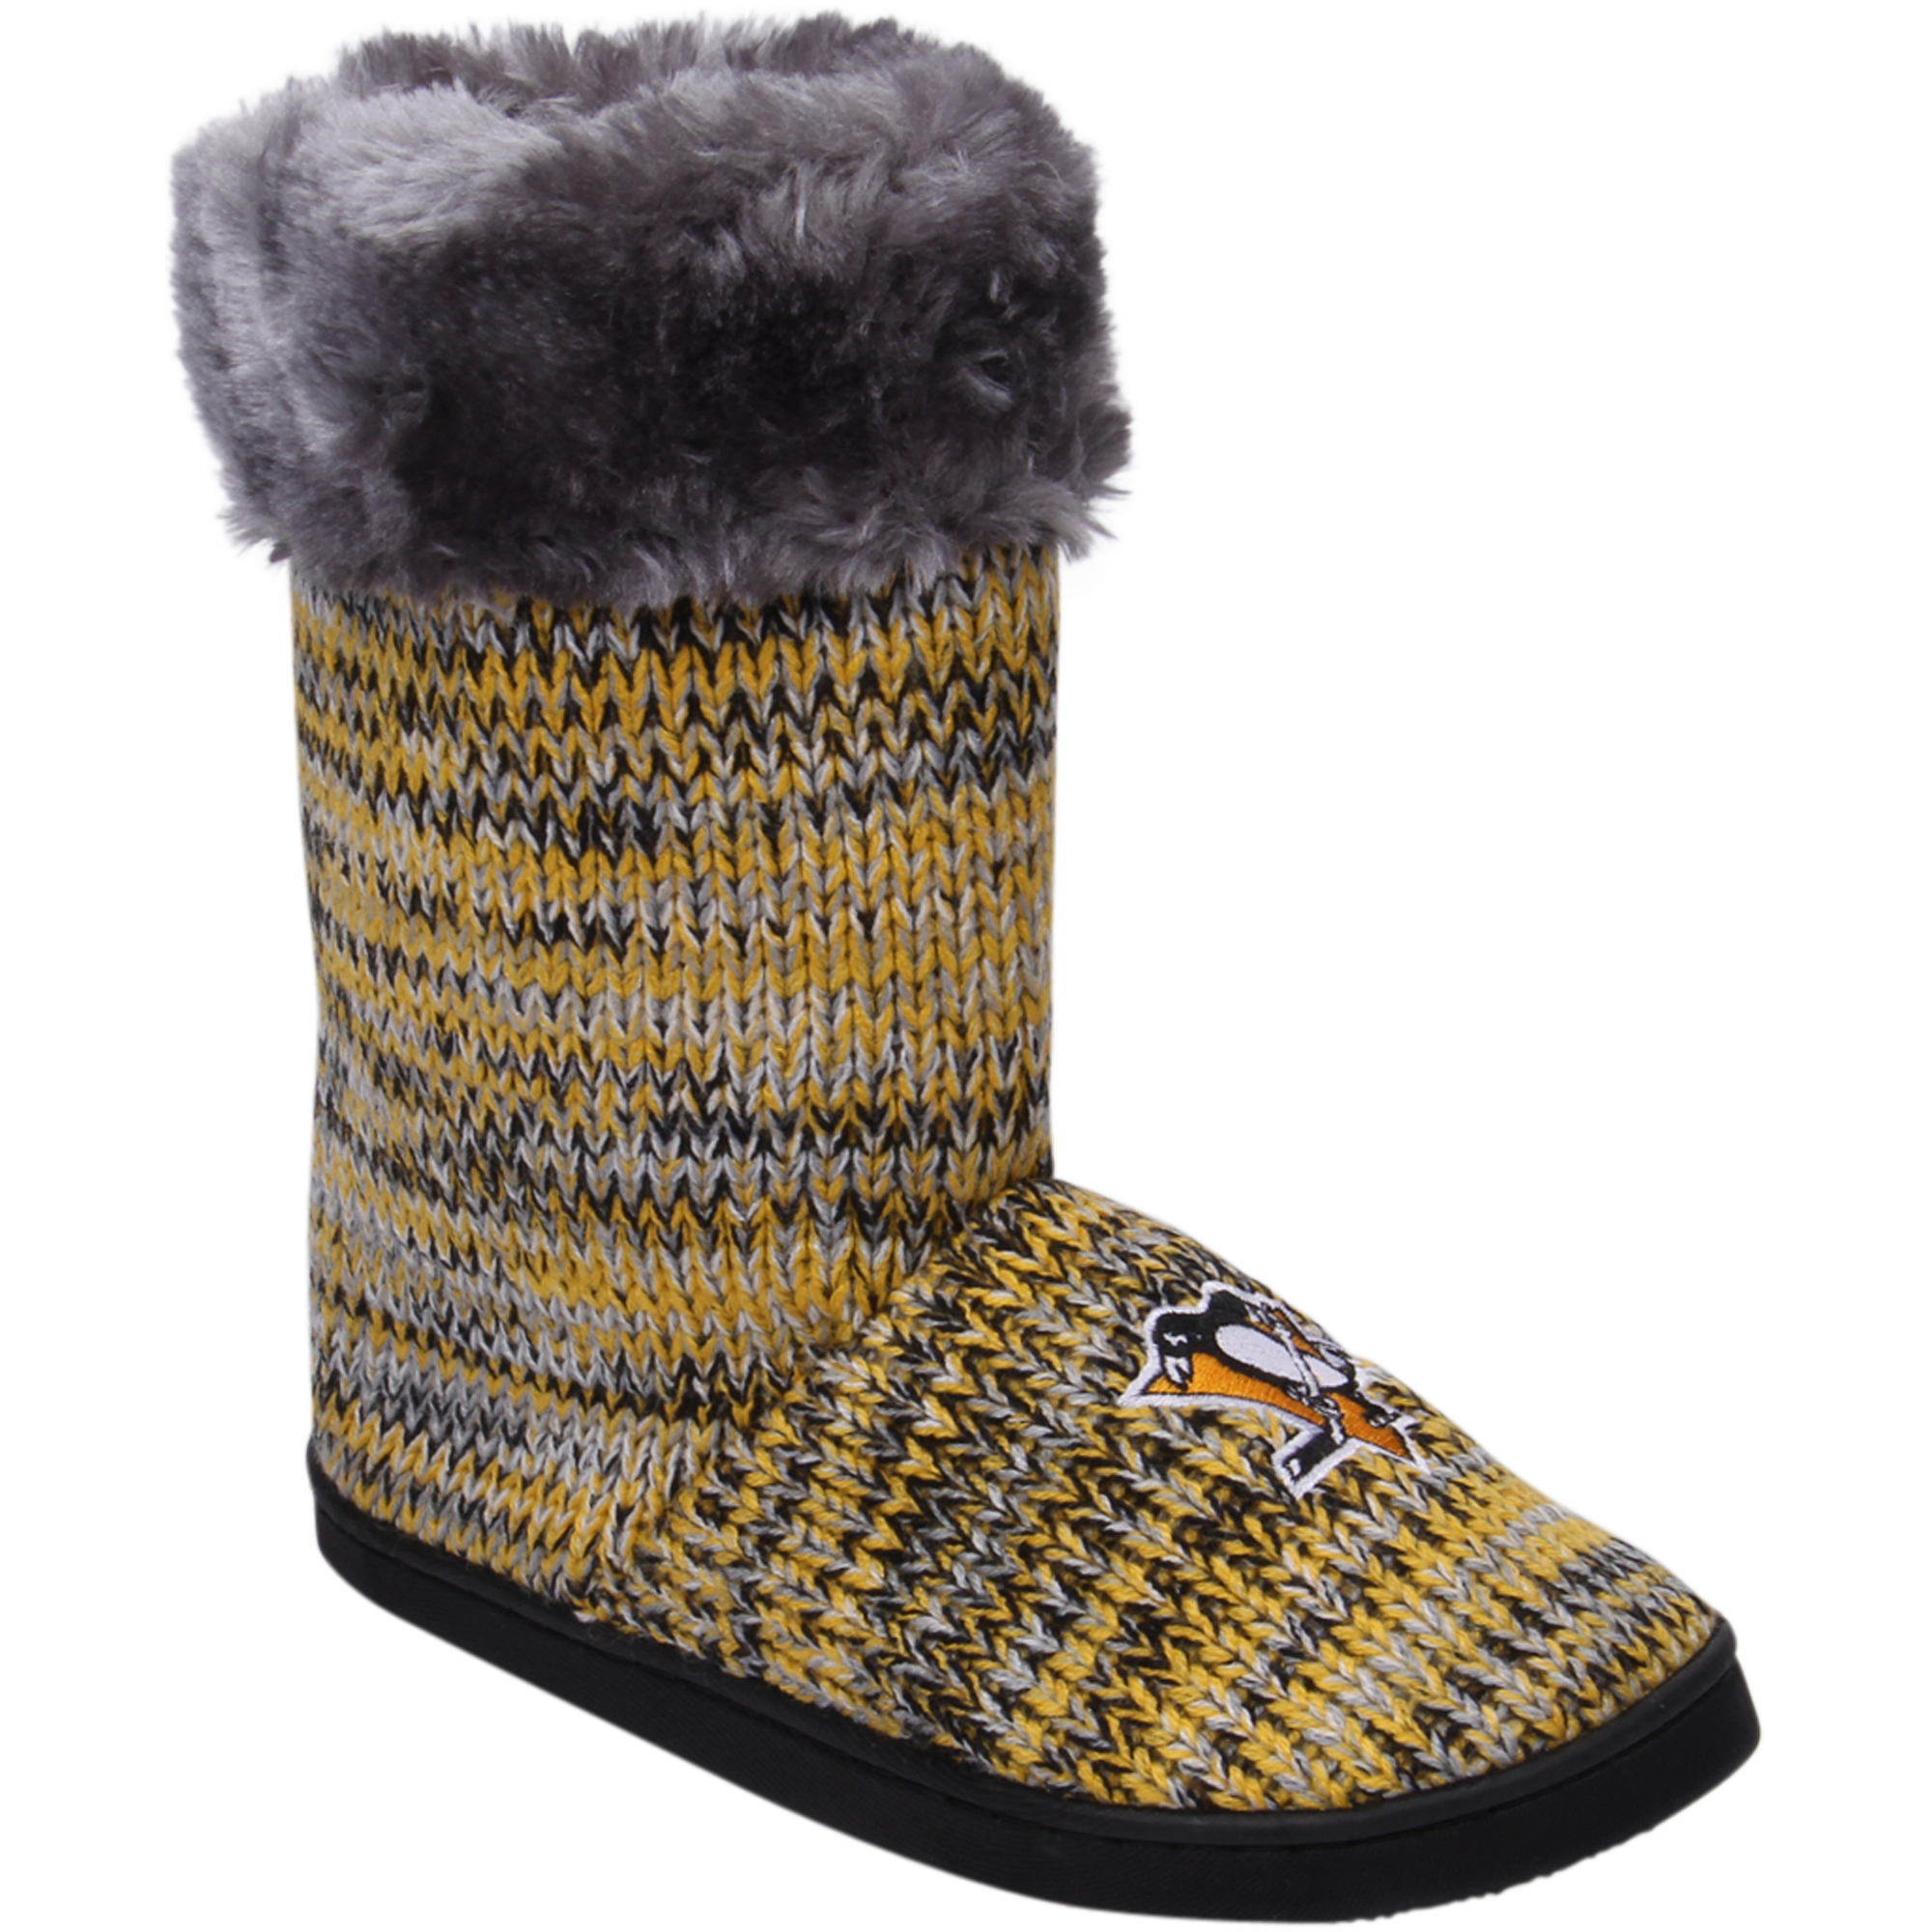 Women's Pittsburgh Penguins Peak Knit Boots by TEAM BEANS INC/FOREVER COLLECTIBLES